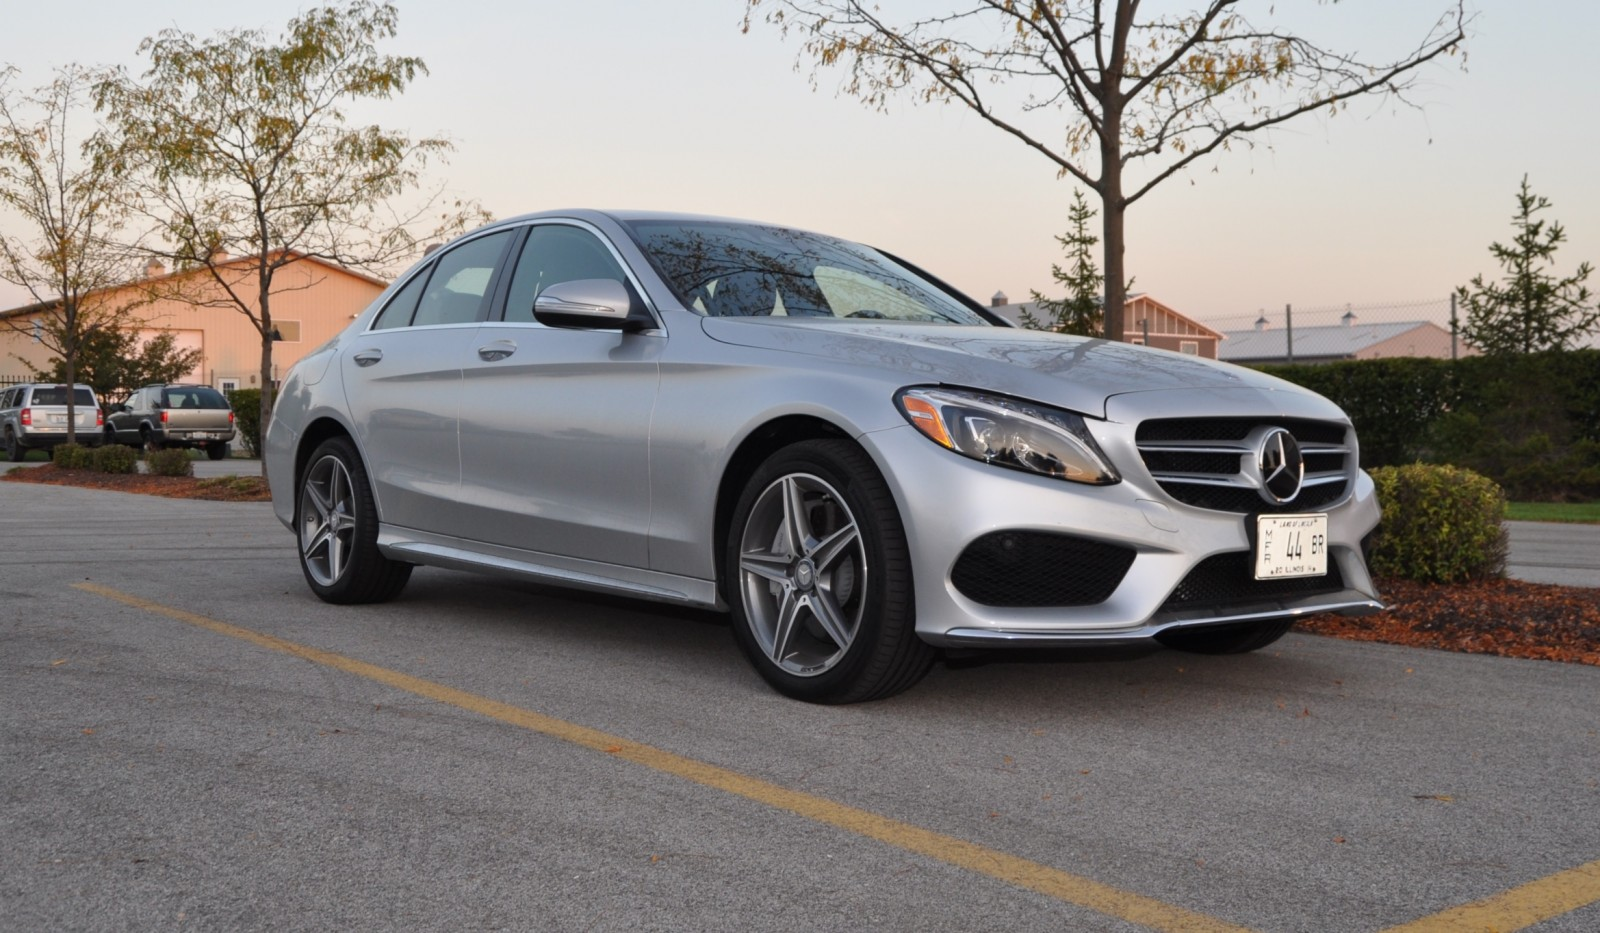 2015 brabus c300 and c400 sport for Mercedes benz c300 4matic 2015 specs